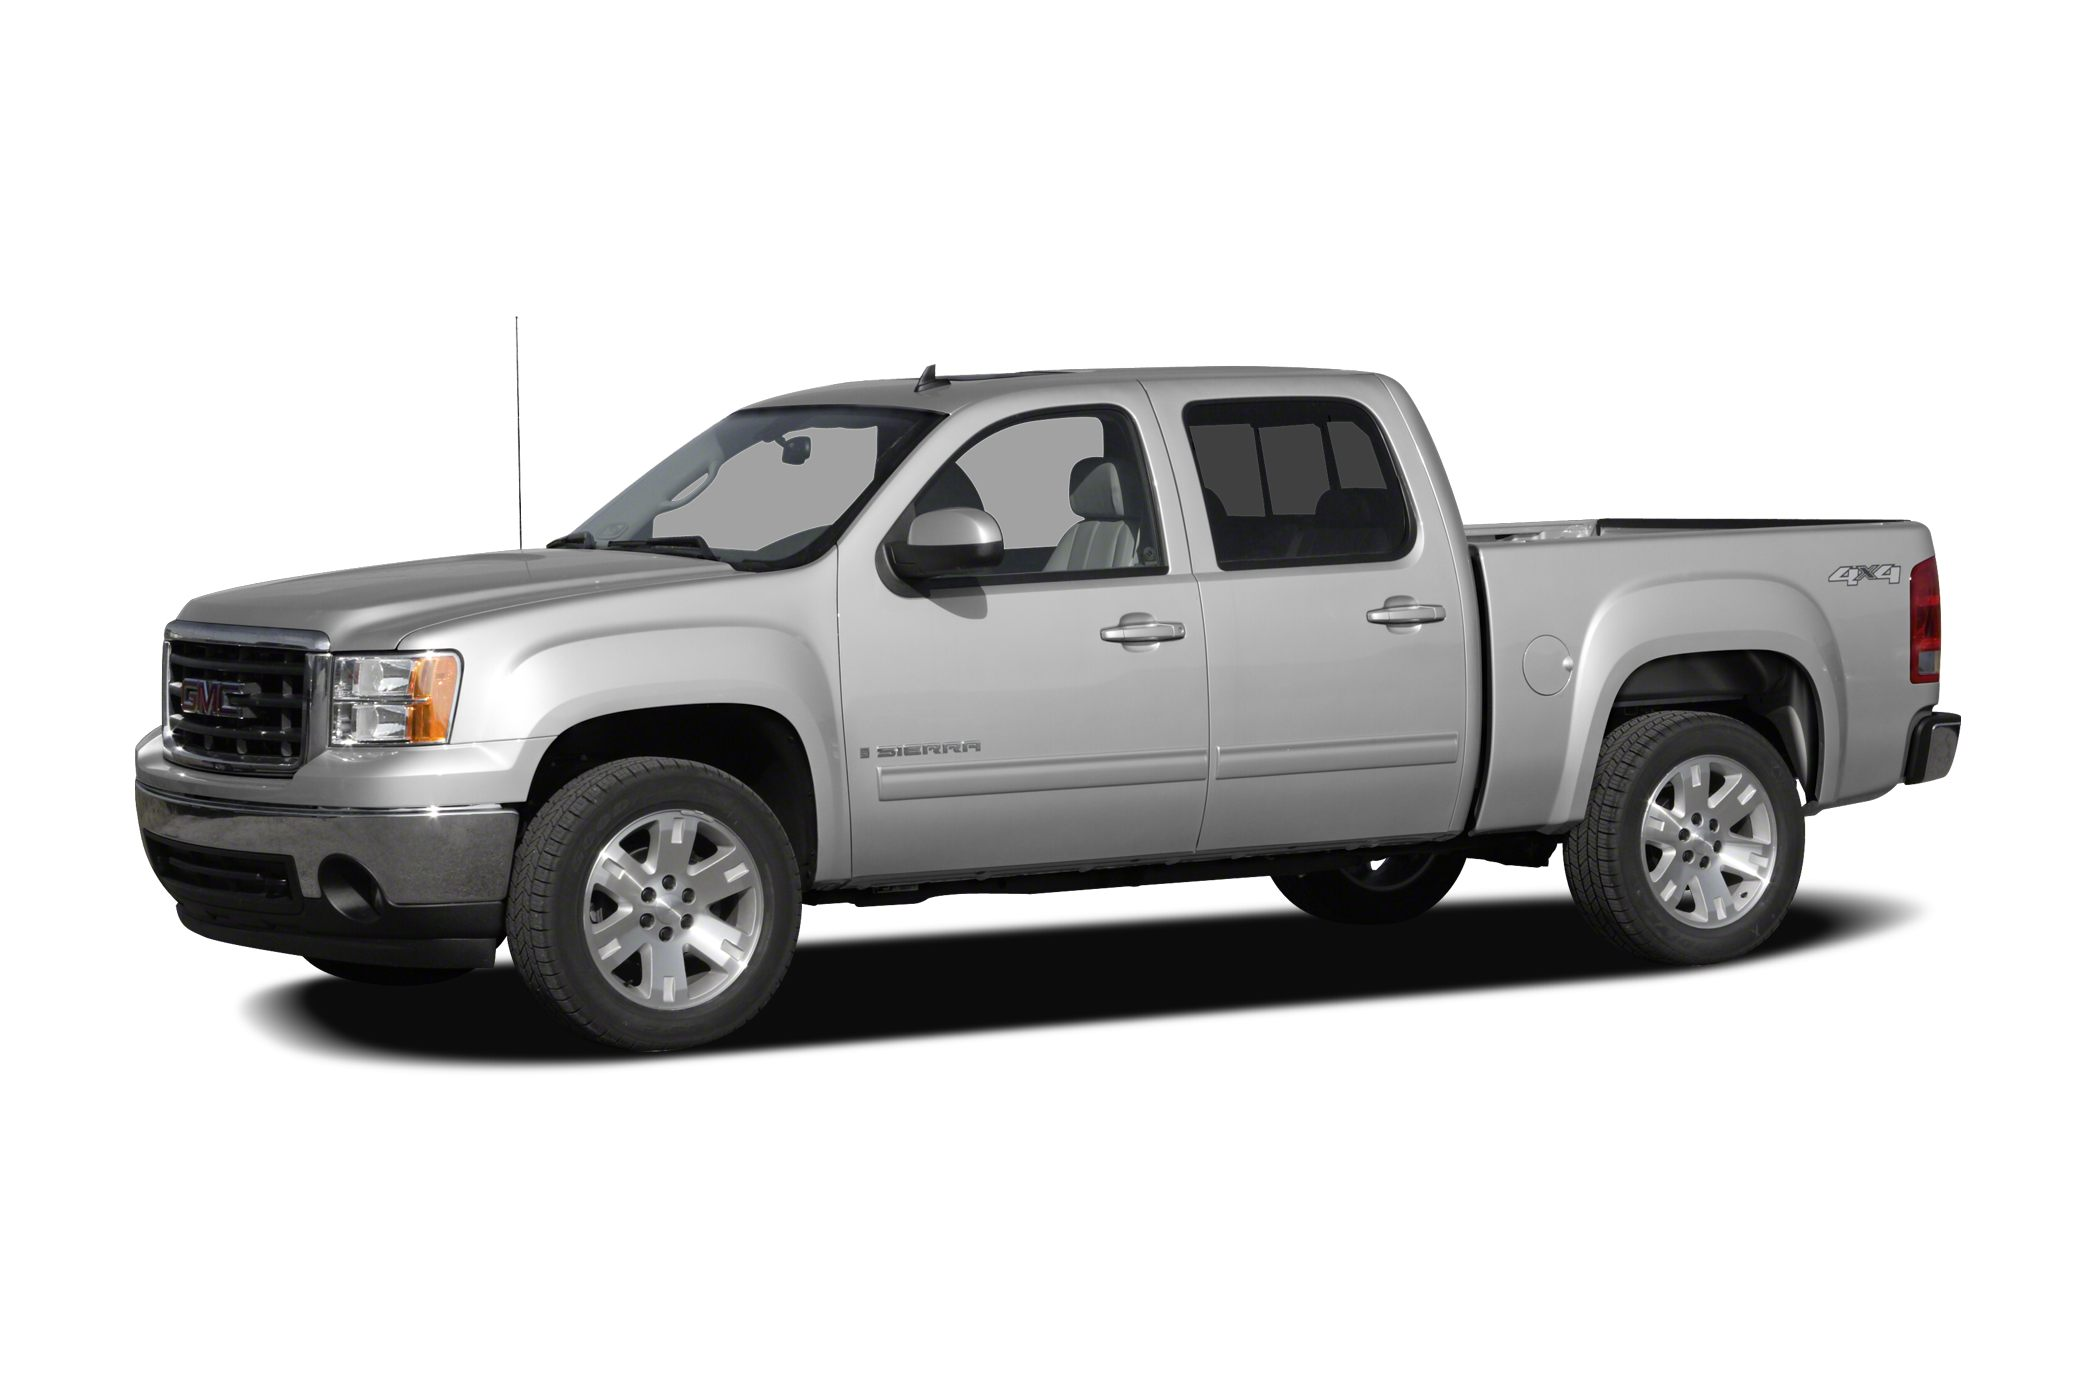 2011 GMC Sierra 1500 Specs, Safety Rating & MPG - CarsDirect